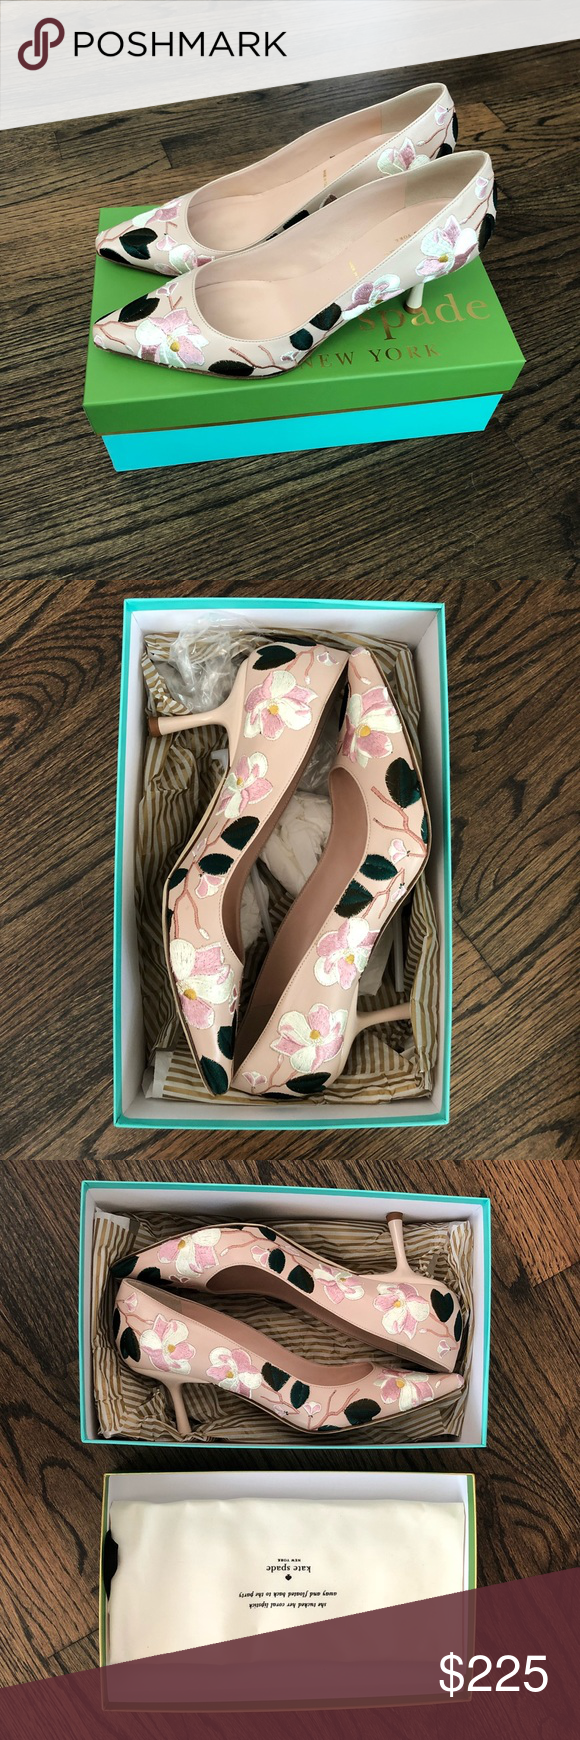 1244f885ee68 Kate spade lynne pink embroidery flower heels euc worn once to a wedding  been png 580x1740